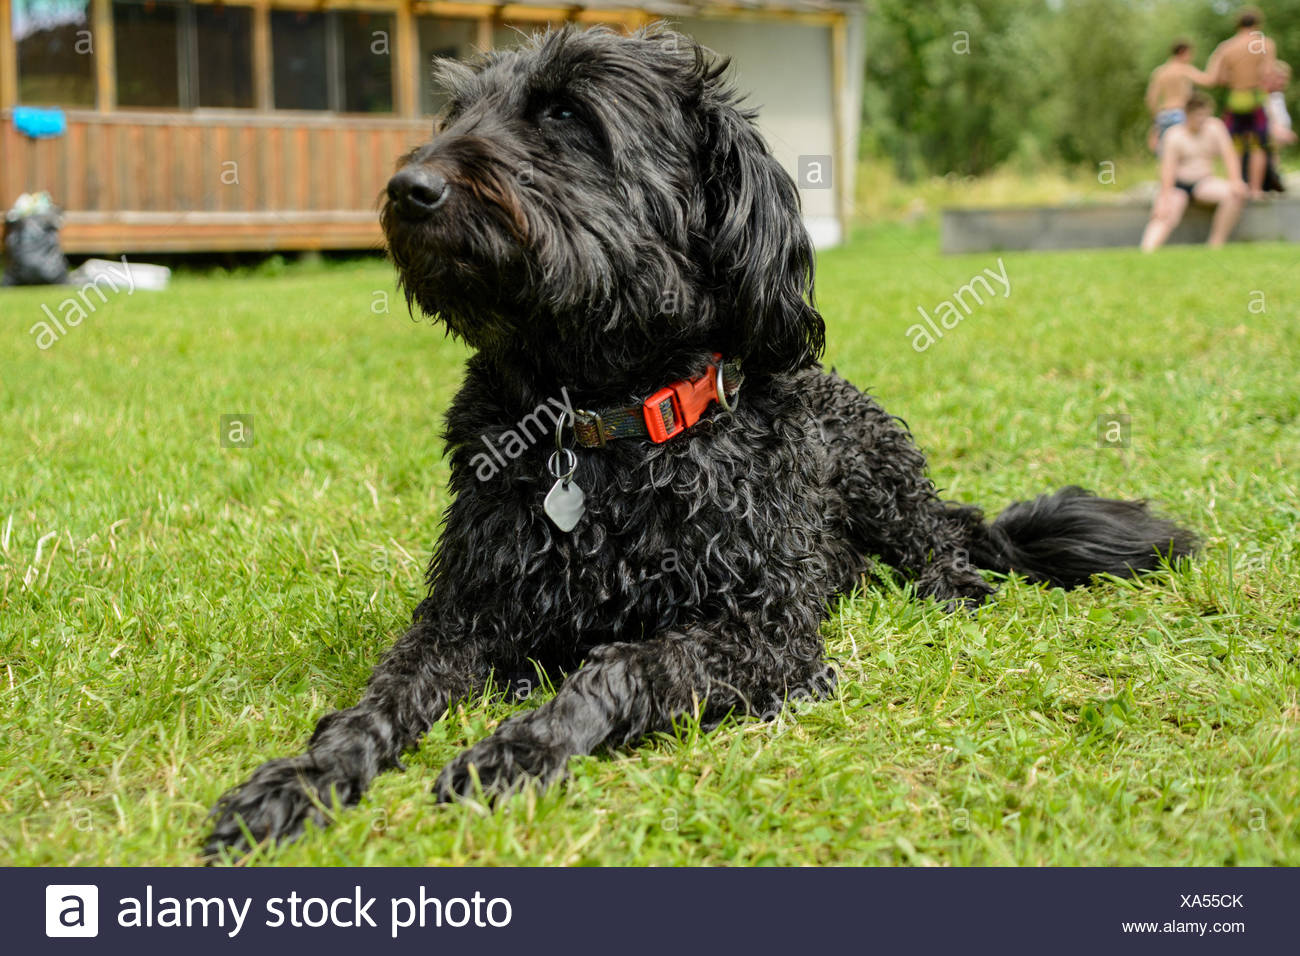 dog photo - black schnauzer - Stock Image